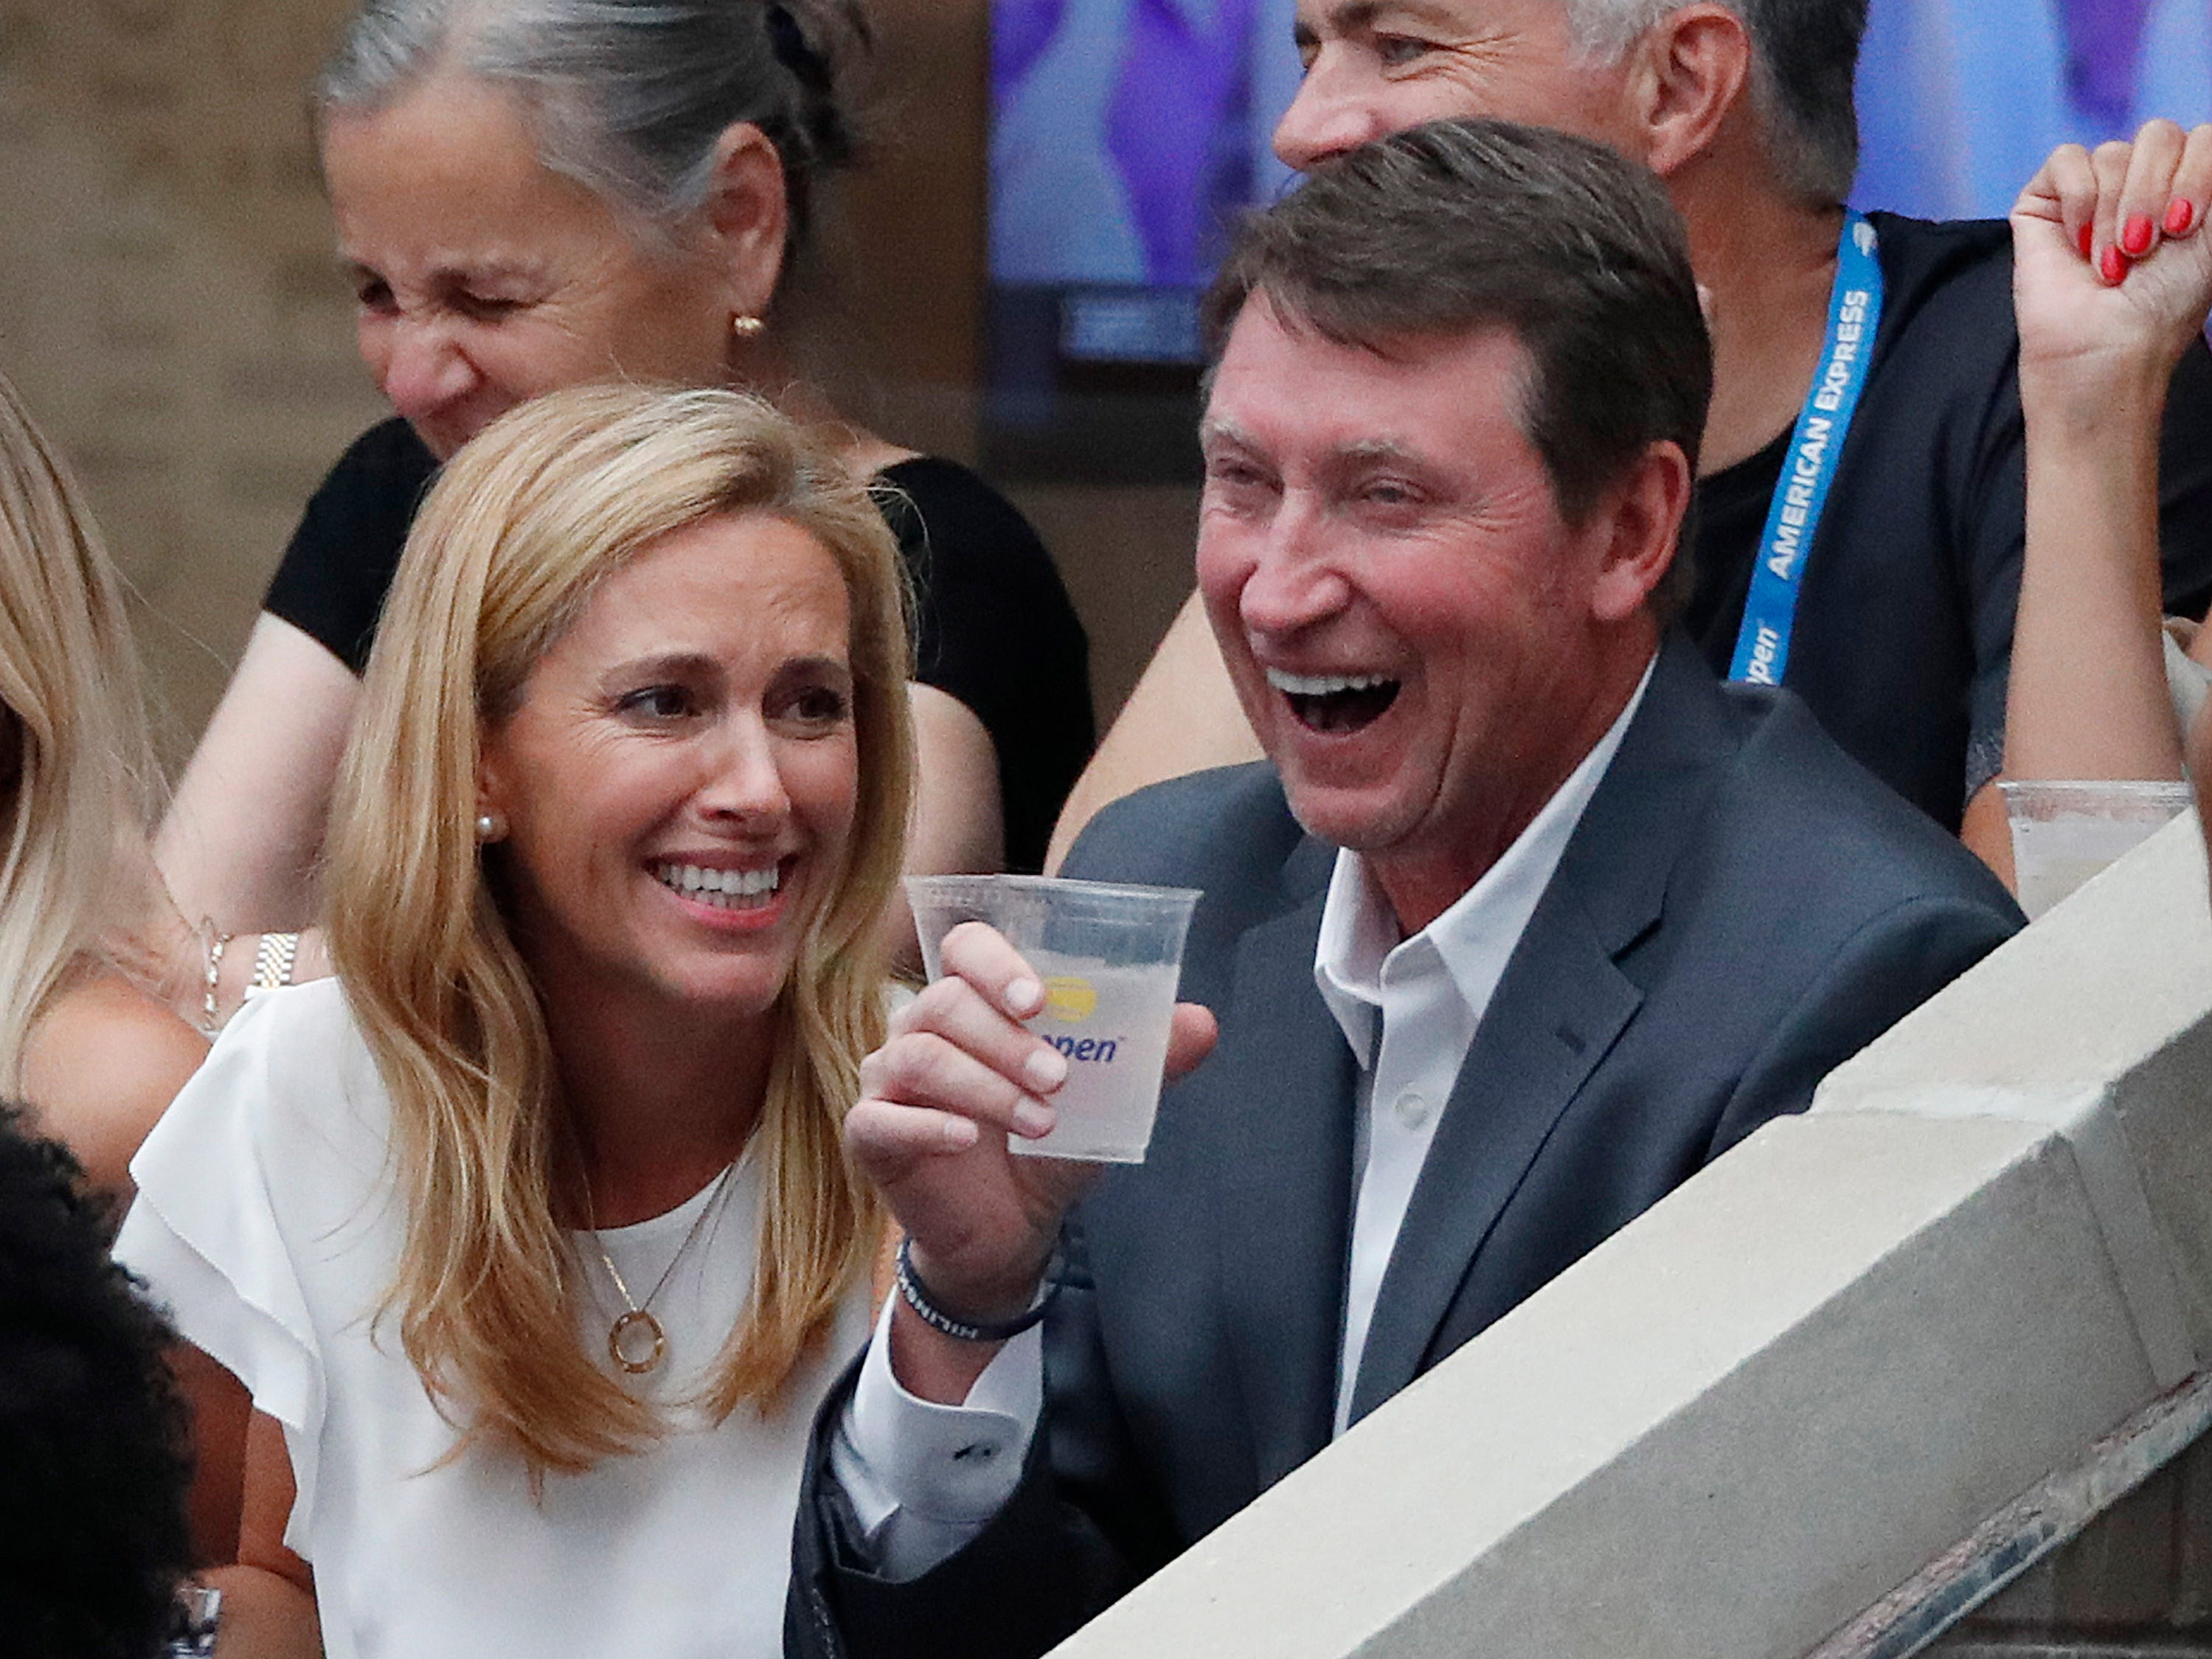 Hockey Hall of Famer Wayne Gretzky, right,  watches the women's final match between Serena Williams and Naomi Osaka.